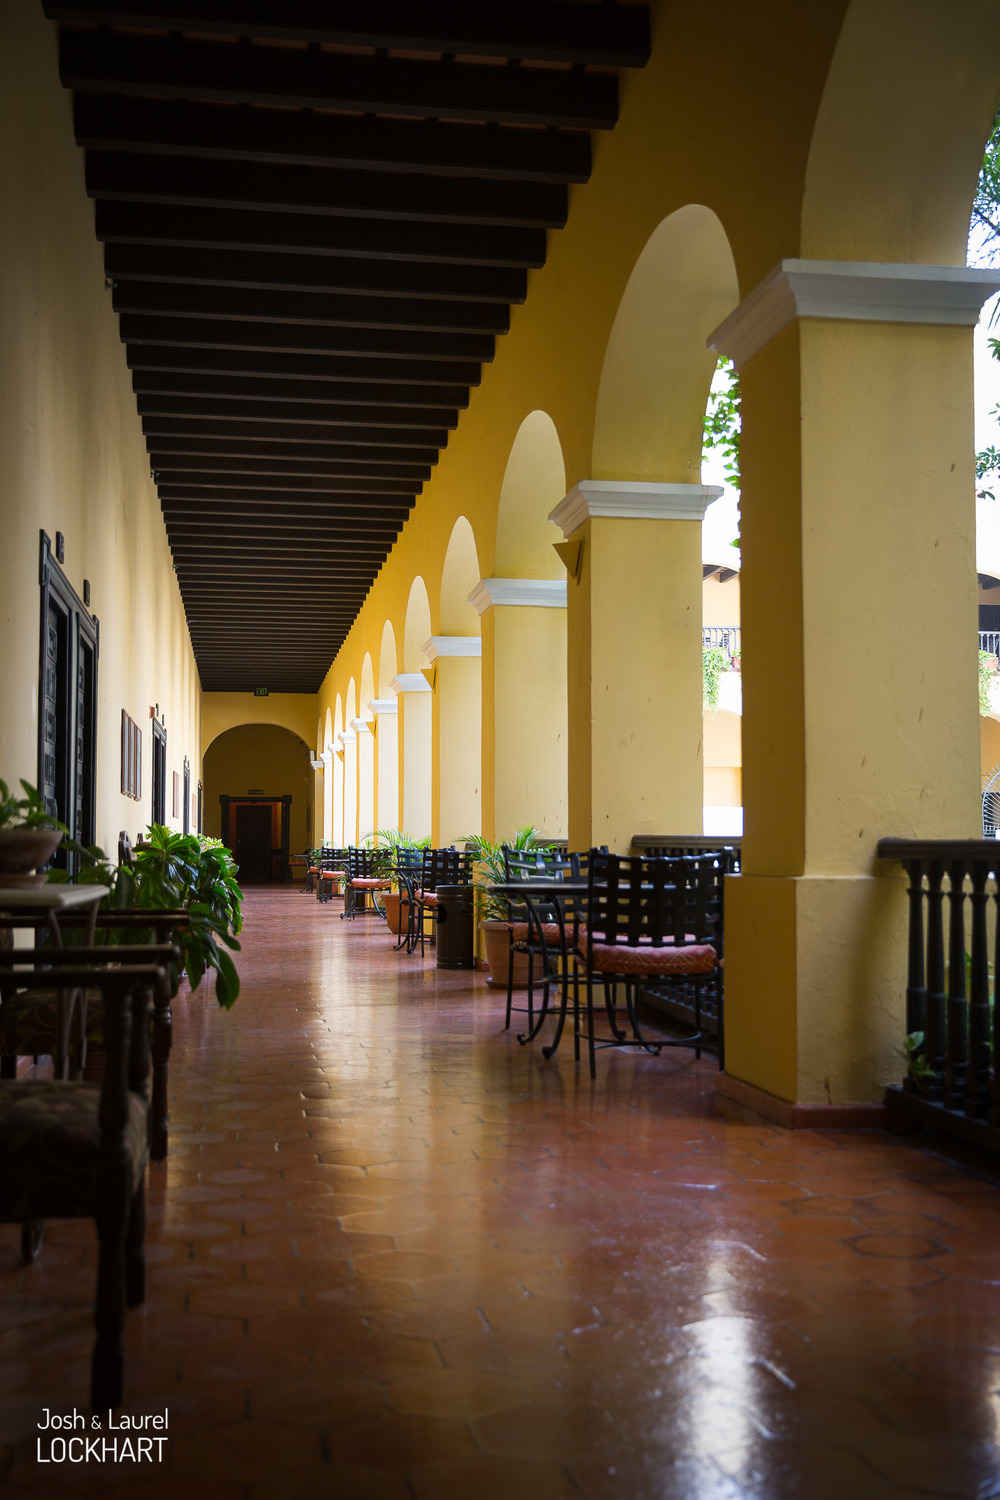 lockhart-travel-puertorico-1.jpg